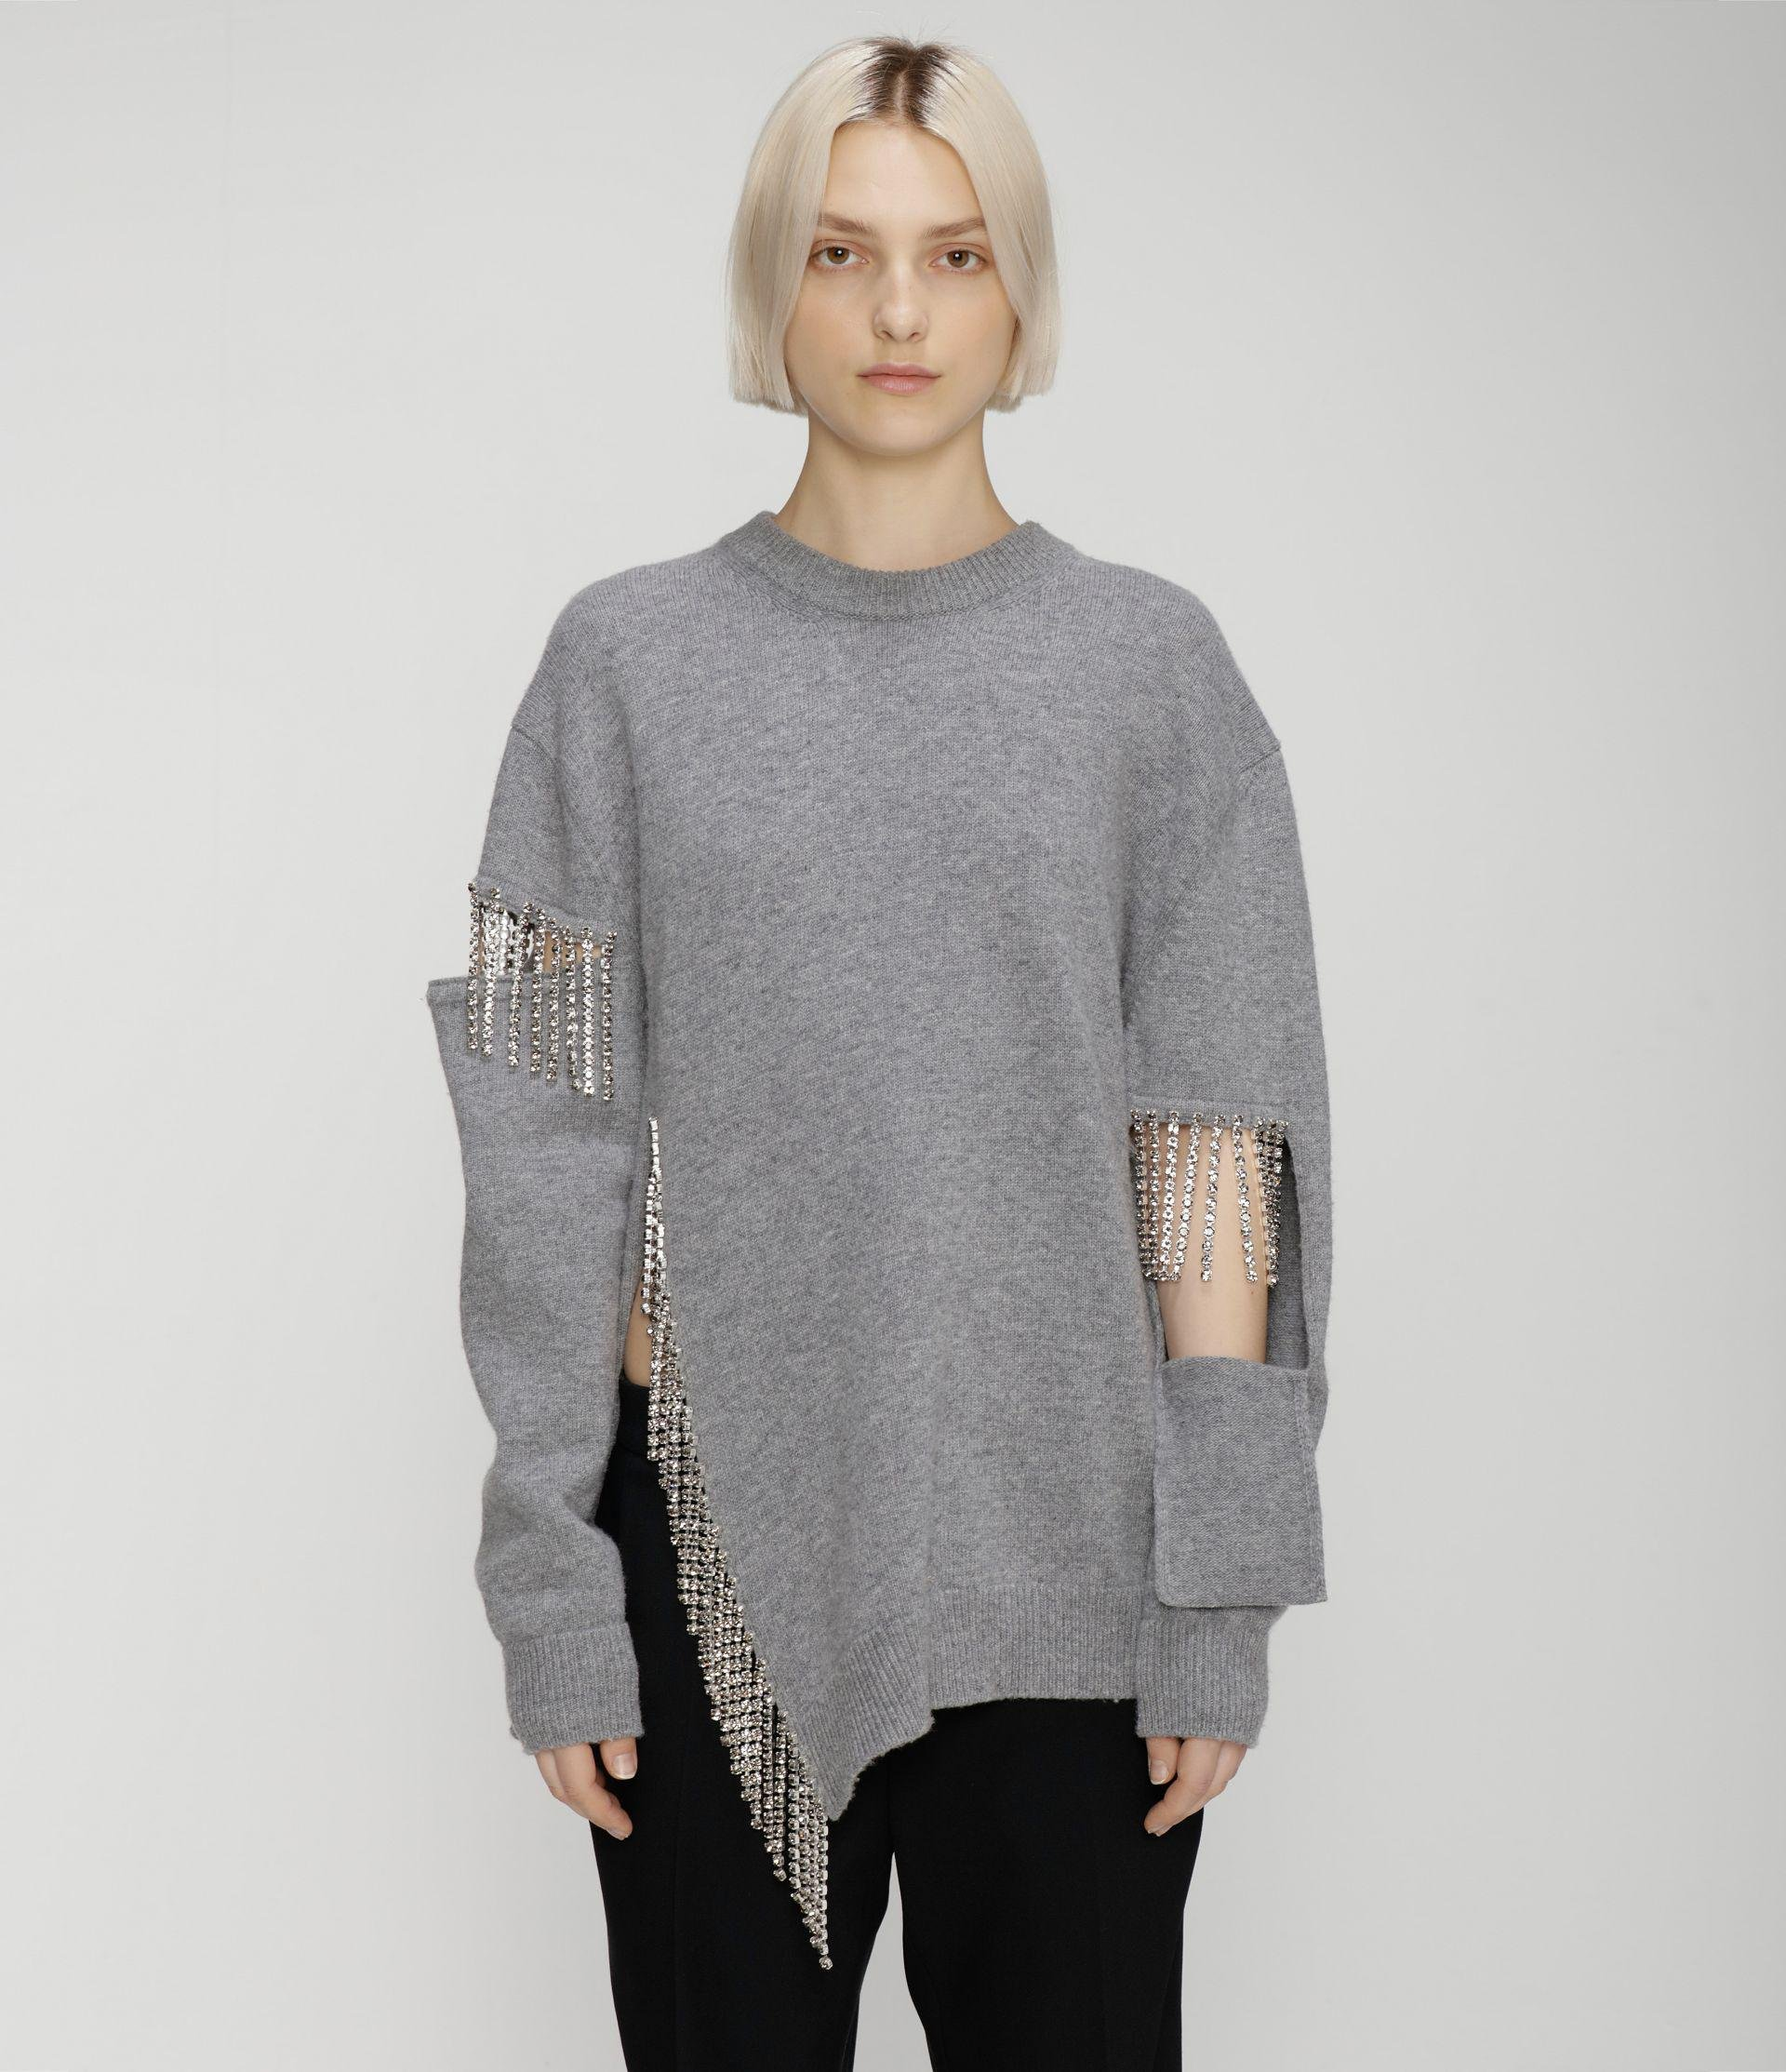 cut-out cupchain knitted sweater